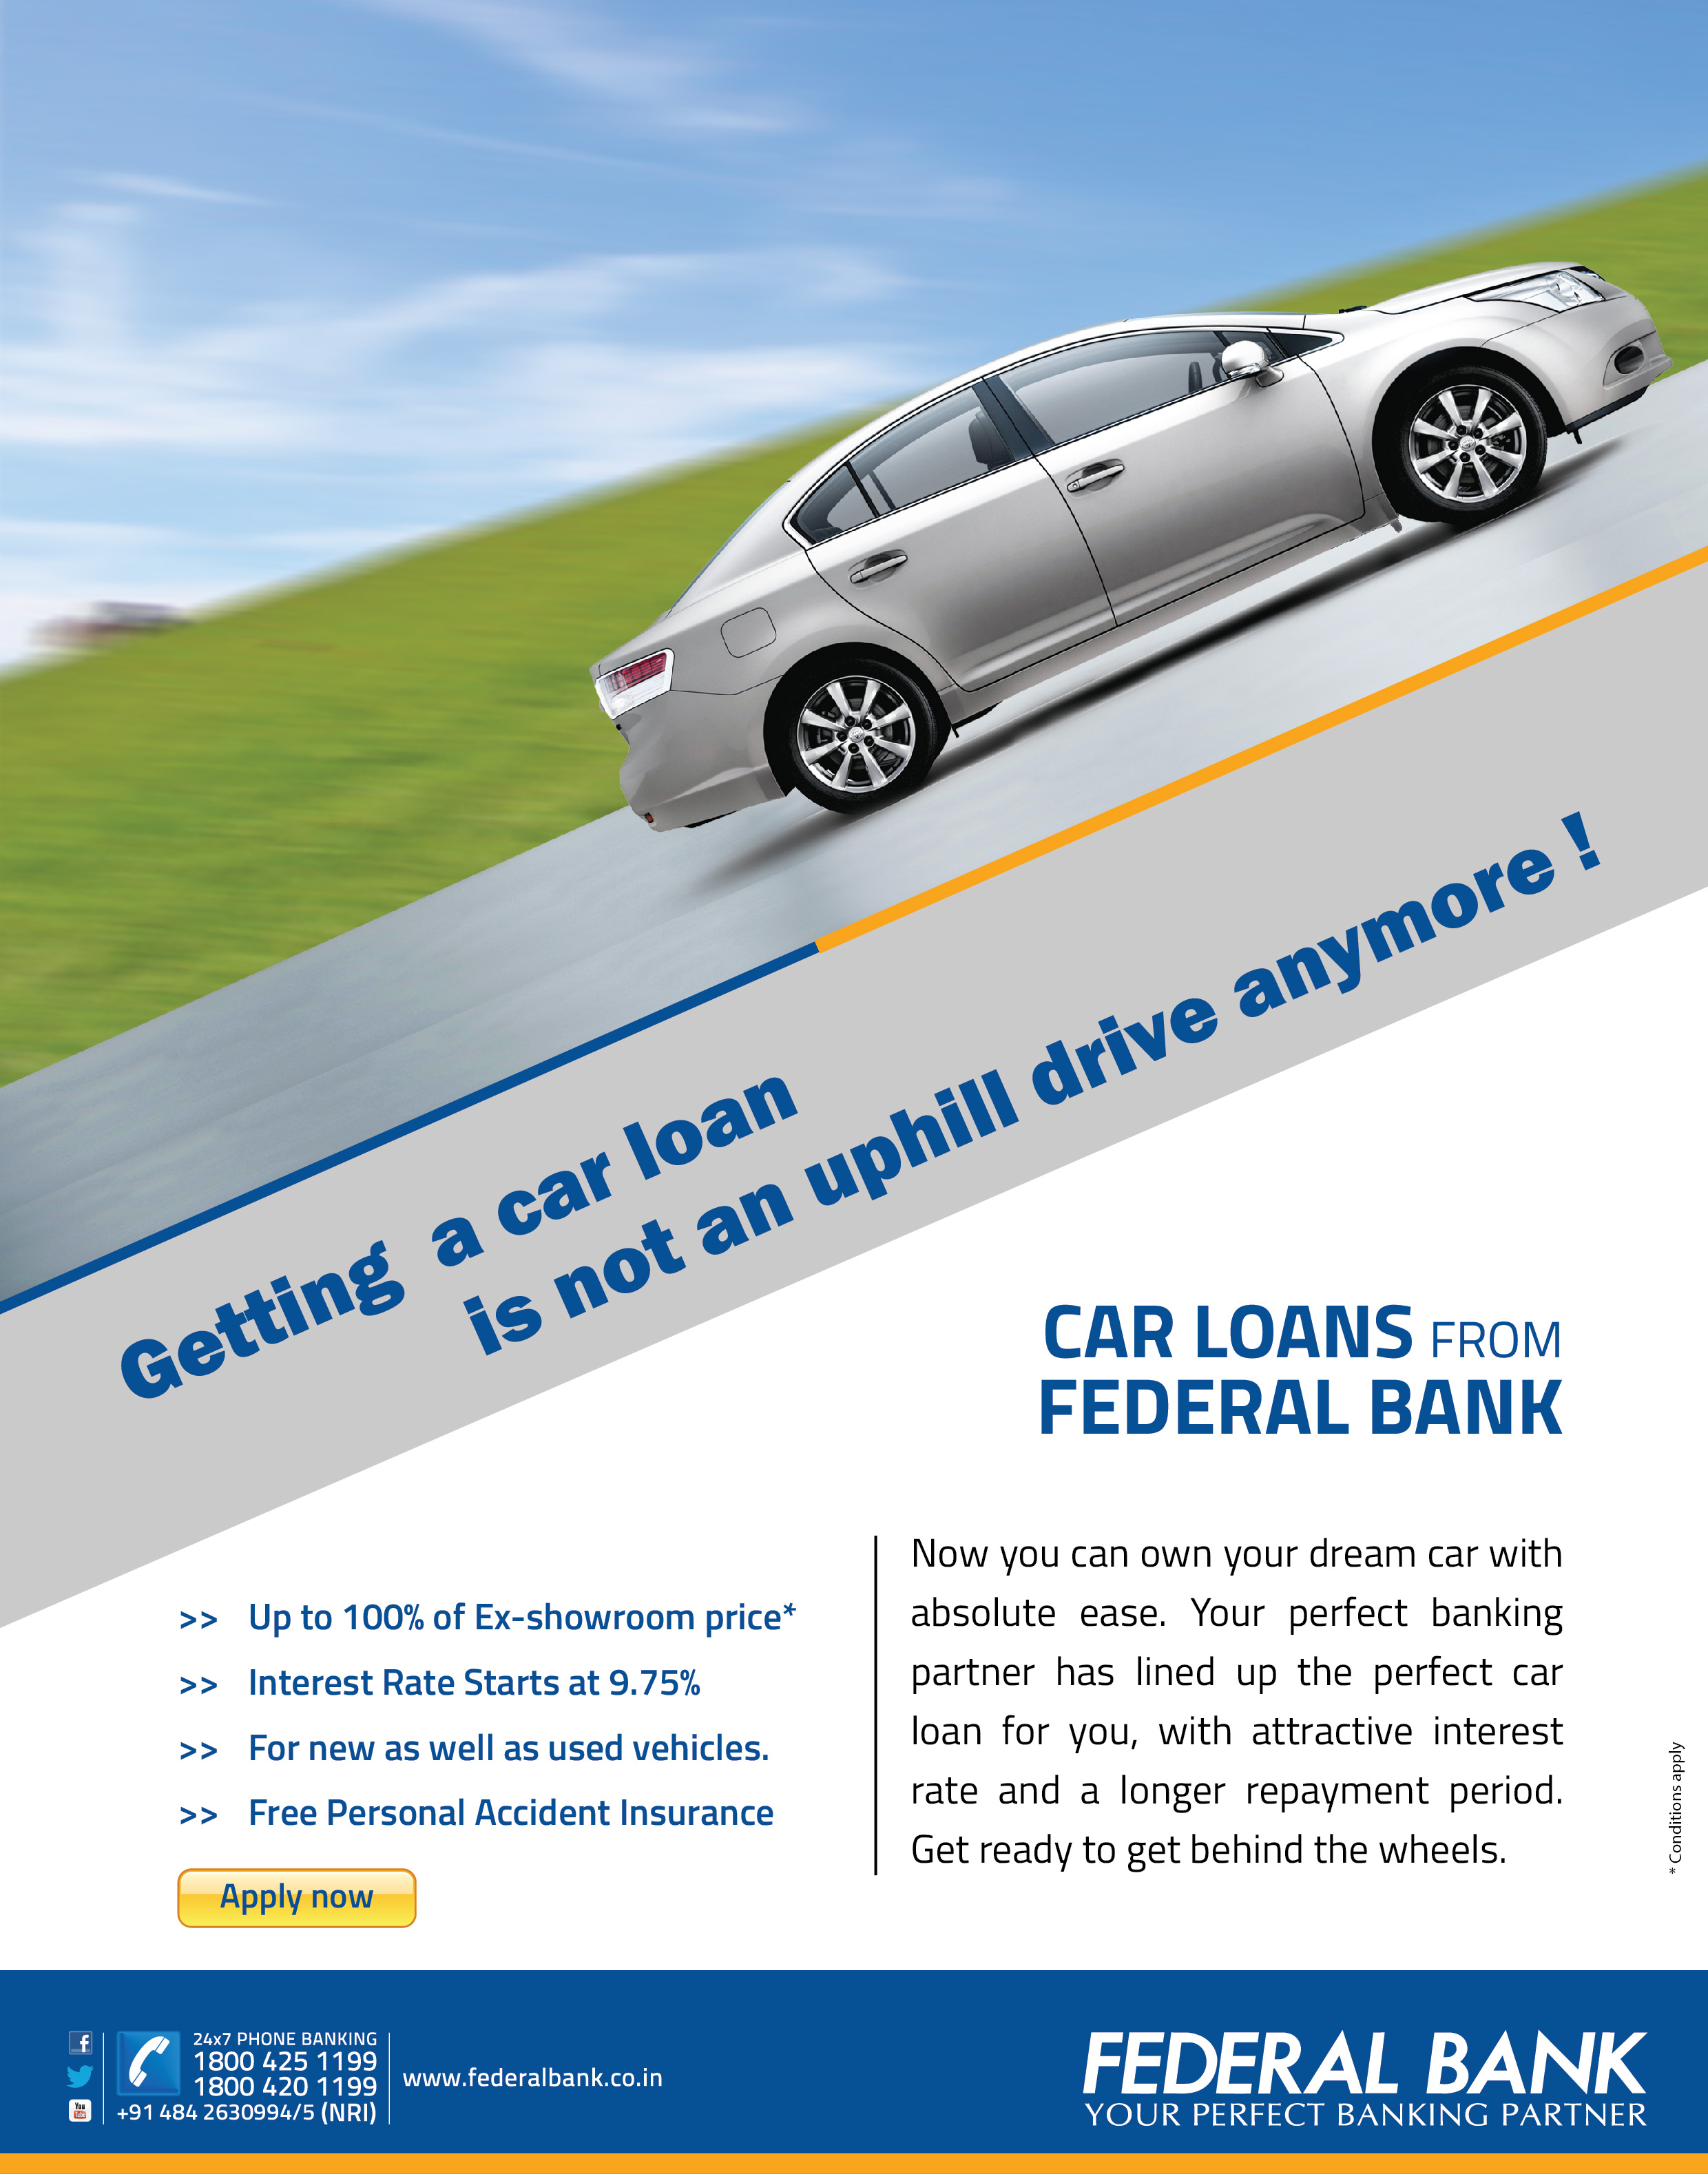 Best Car Loan in India, Car Loan Interest Rate - Federal Bank